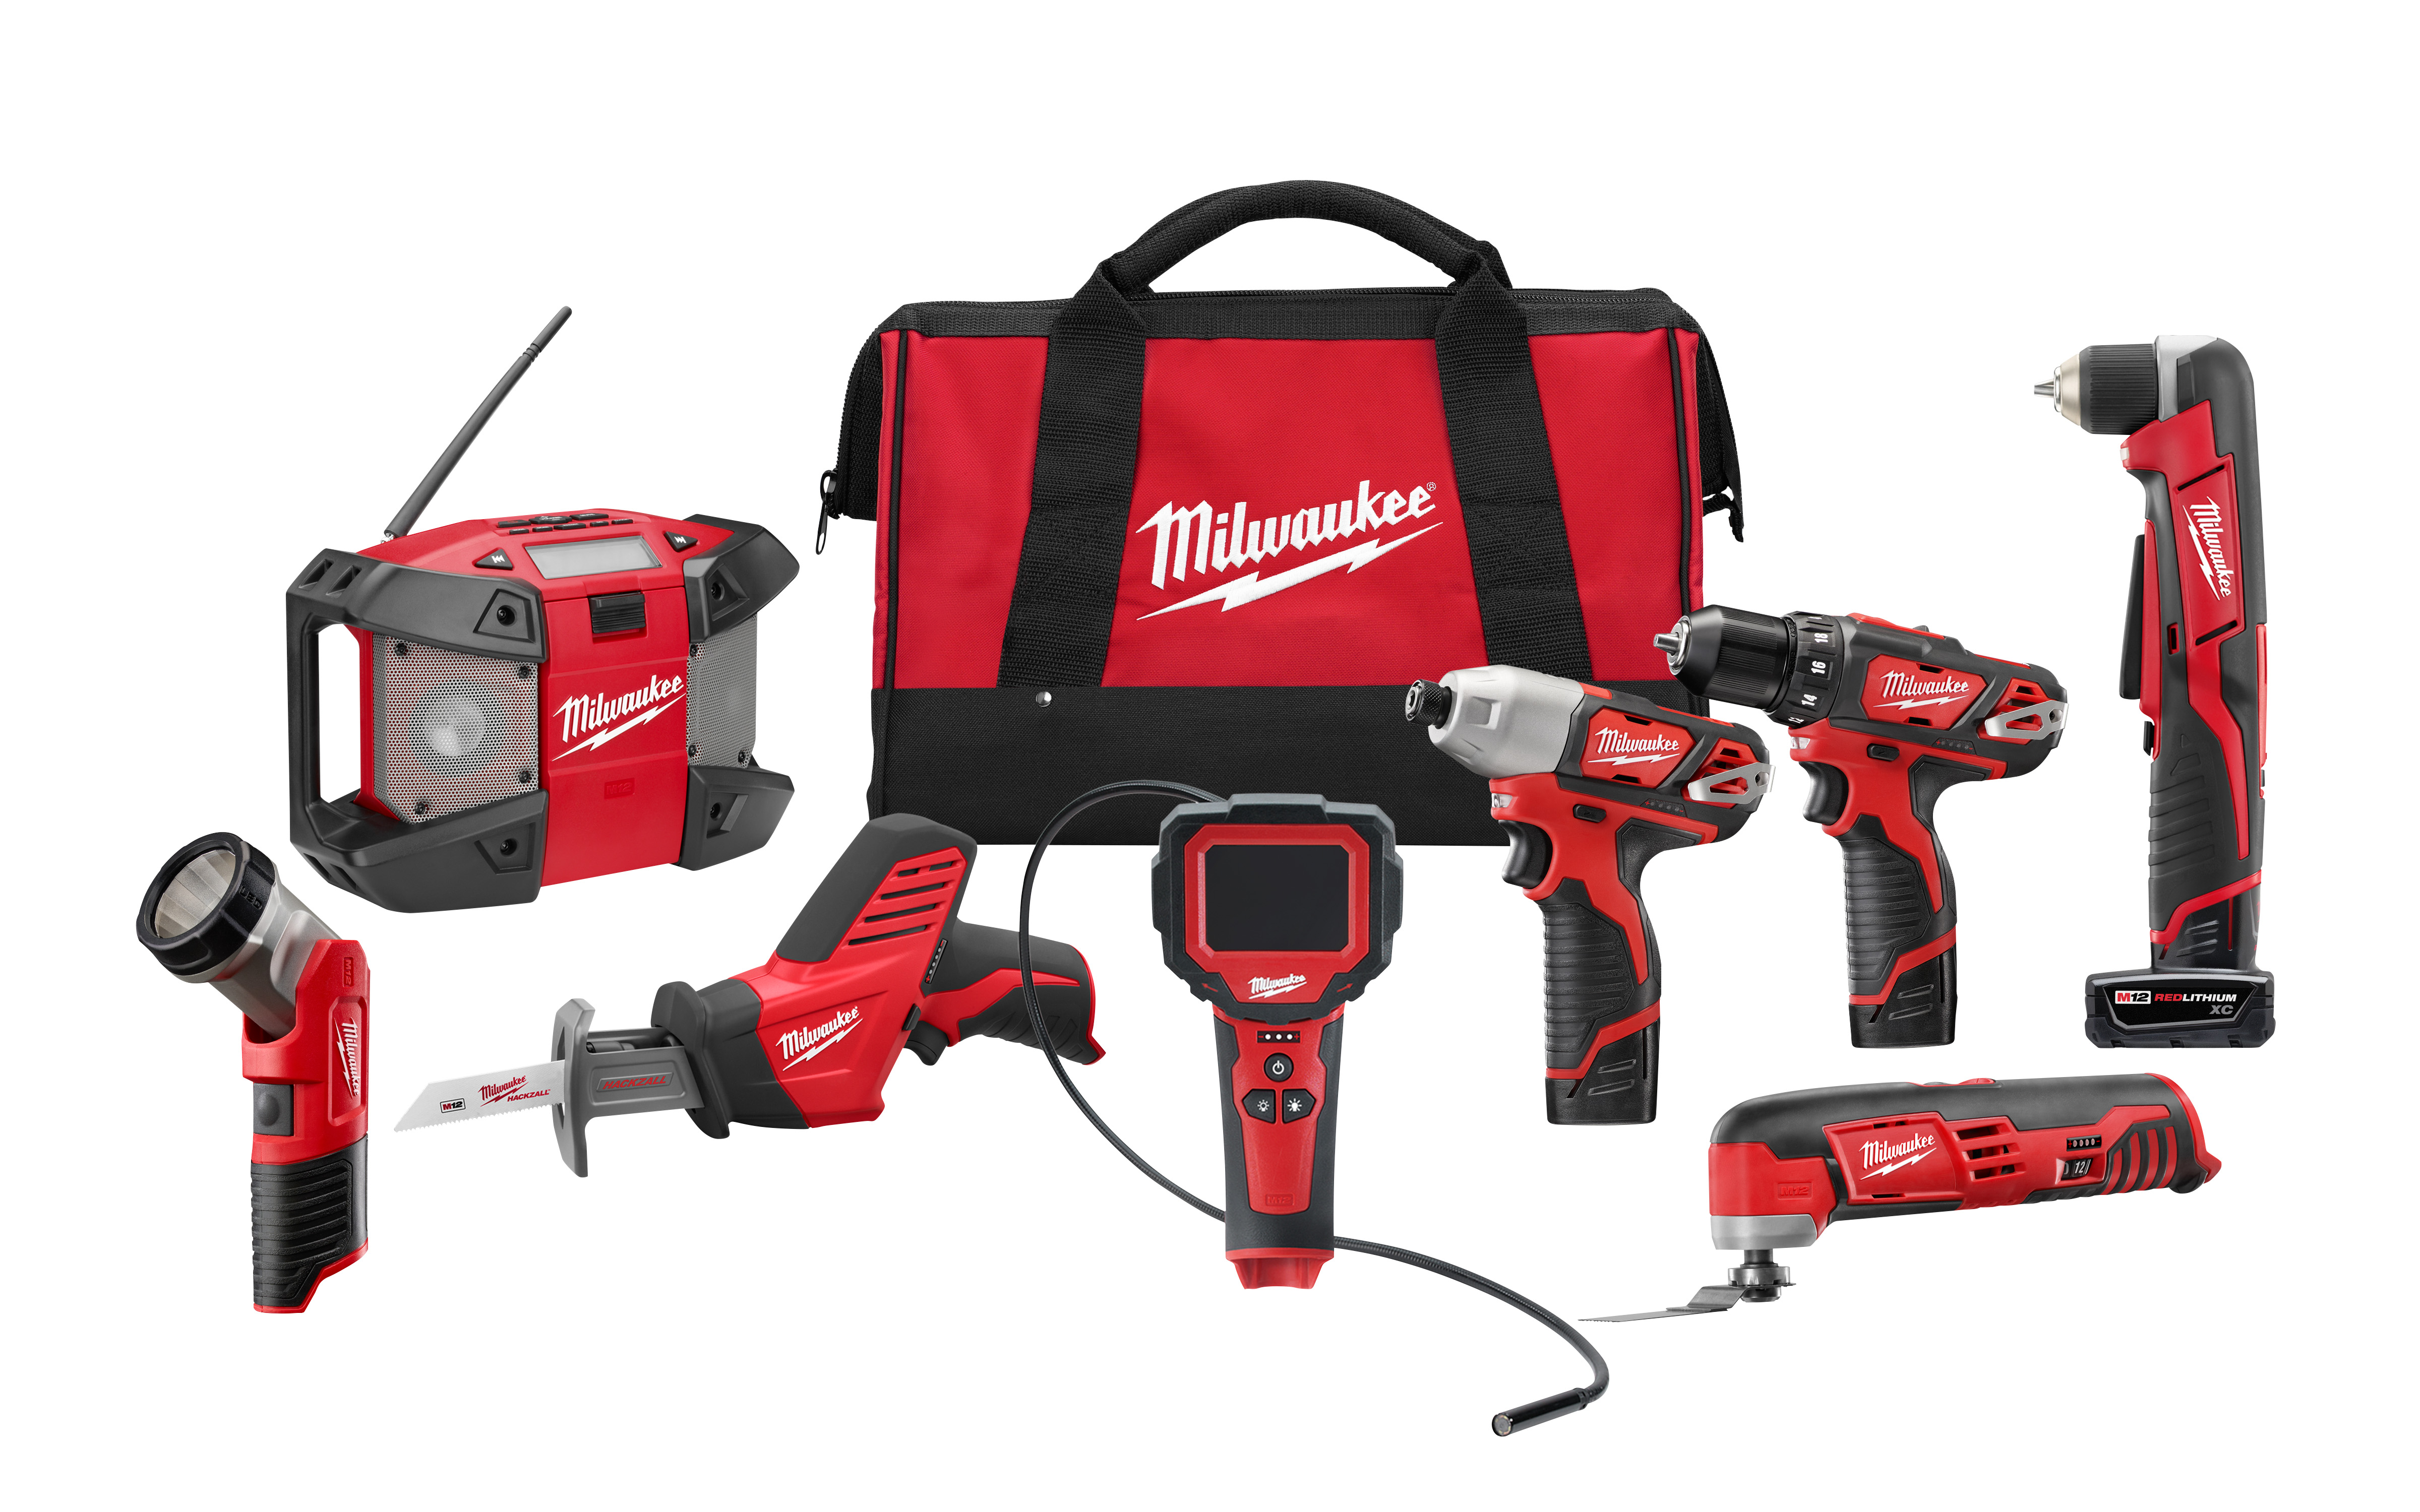 Milwaukee® M12™ 2495-28 8-Tool Cordless Combination Kit, Tools: Drill, Impact Driver, Oscillating Tool, Reciprocating Saw, Right Angle Drill, 12 VDC, 1.5 Ah Lithium-Ion, Keyless Blade